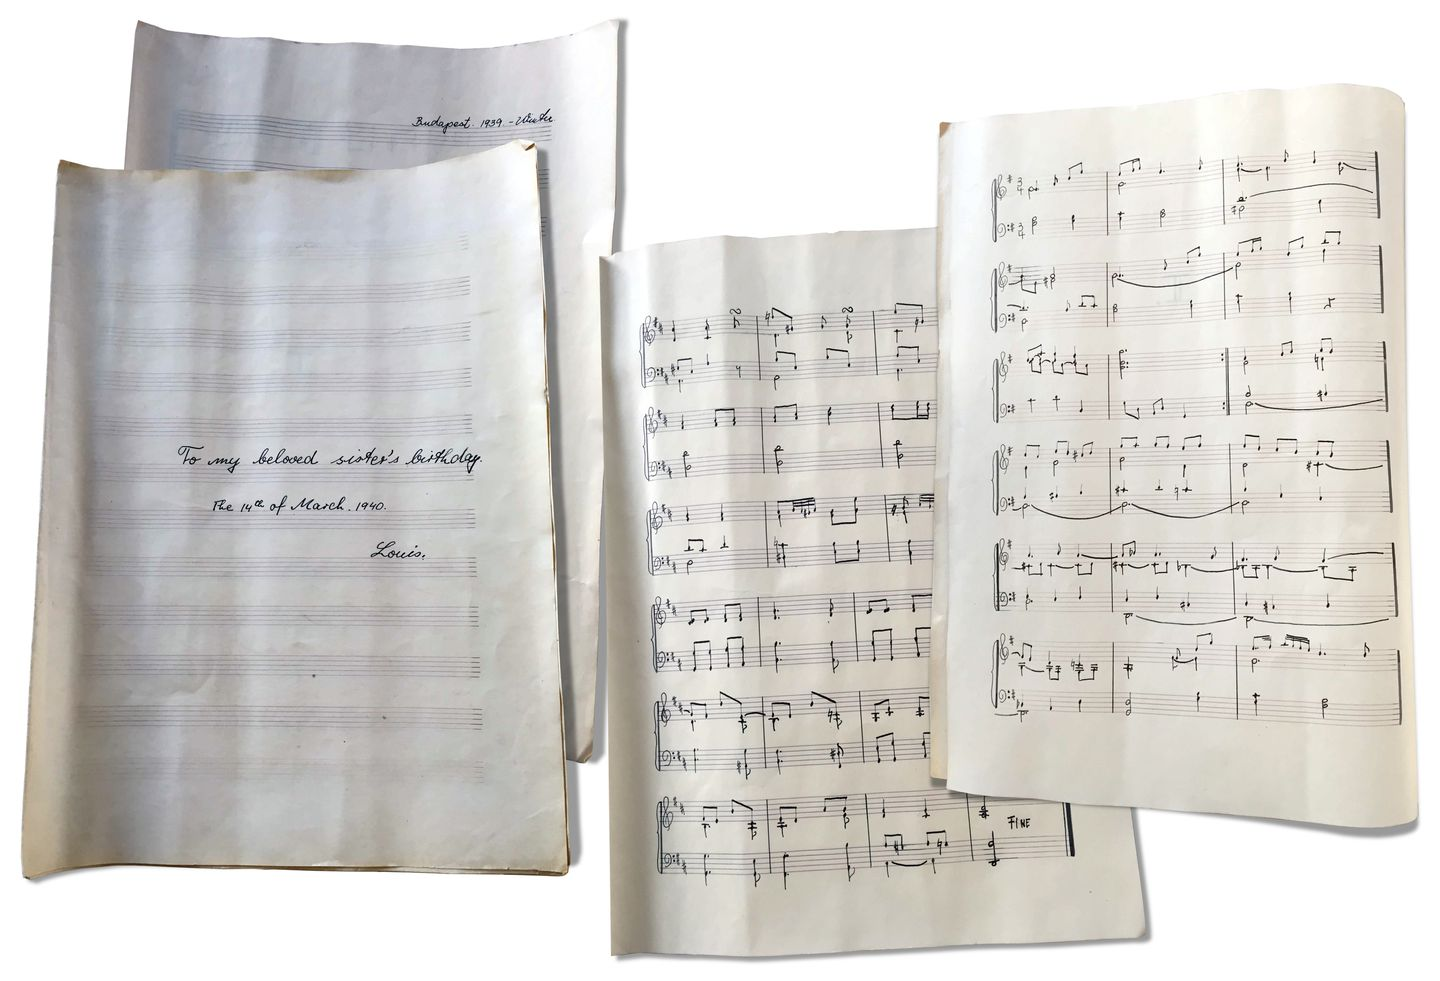 A trio of works for solo piano Delej composed for his sister on her 25th birthday.